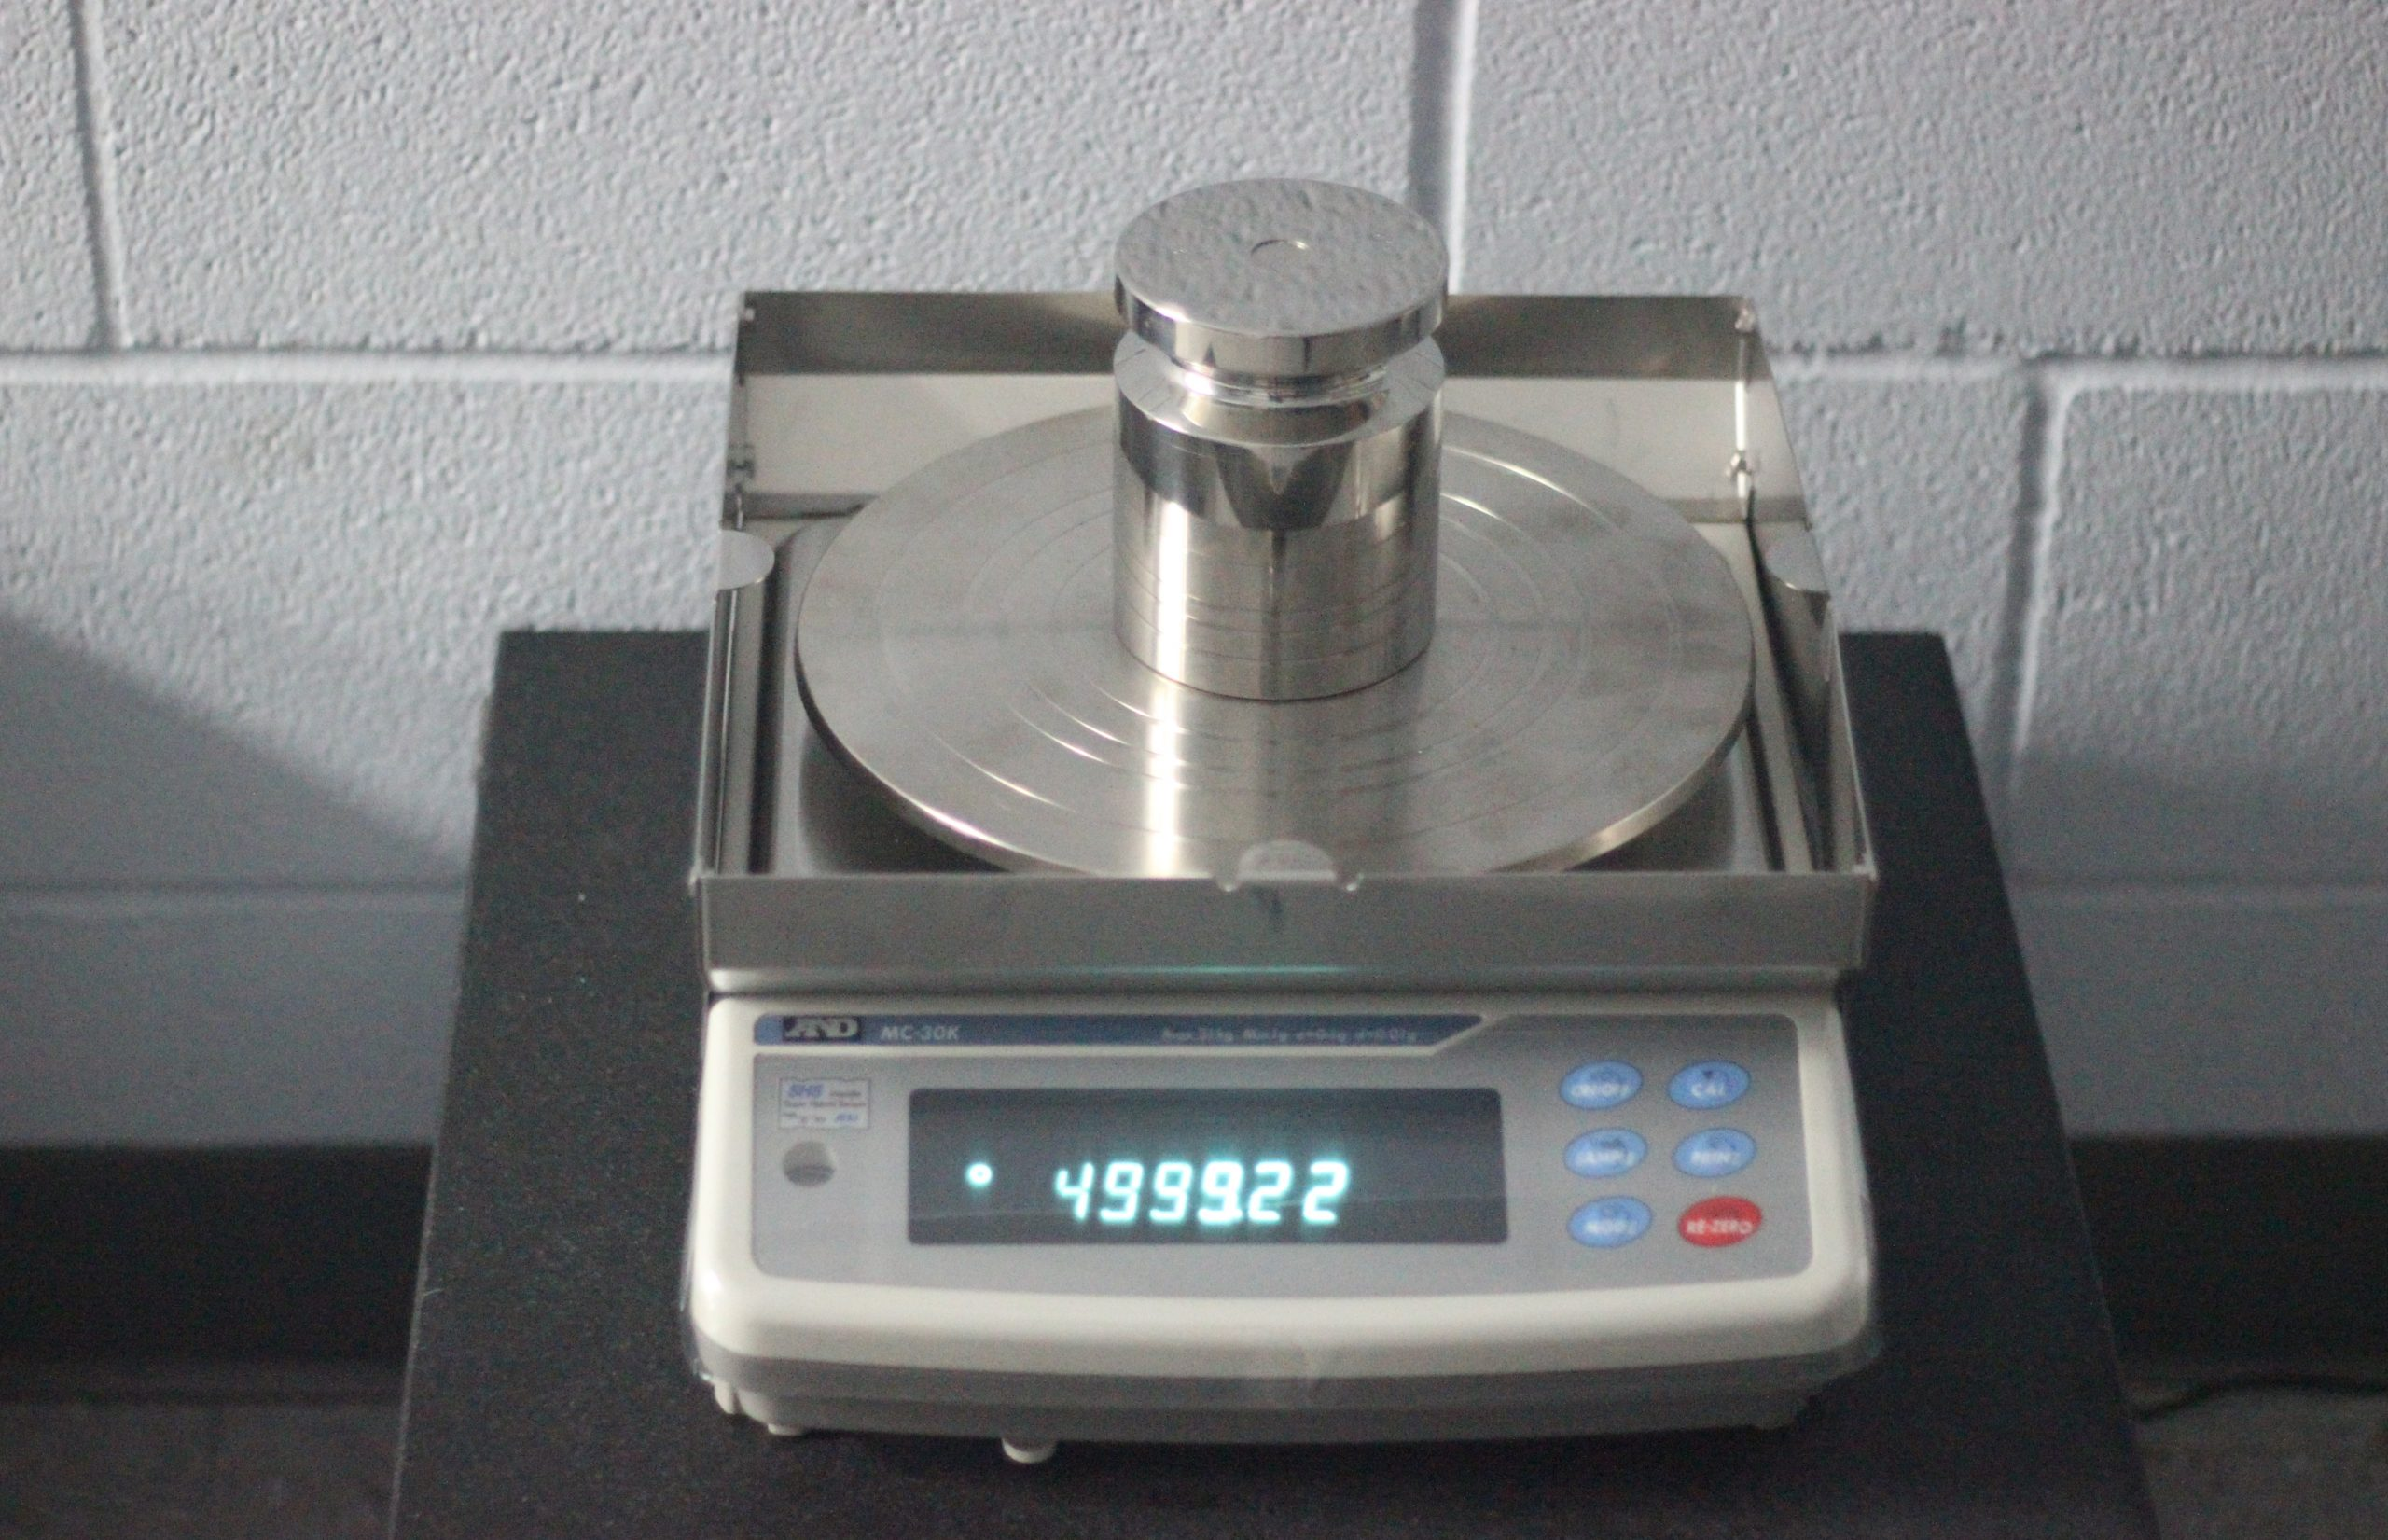 test weight calibration